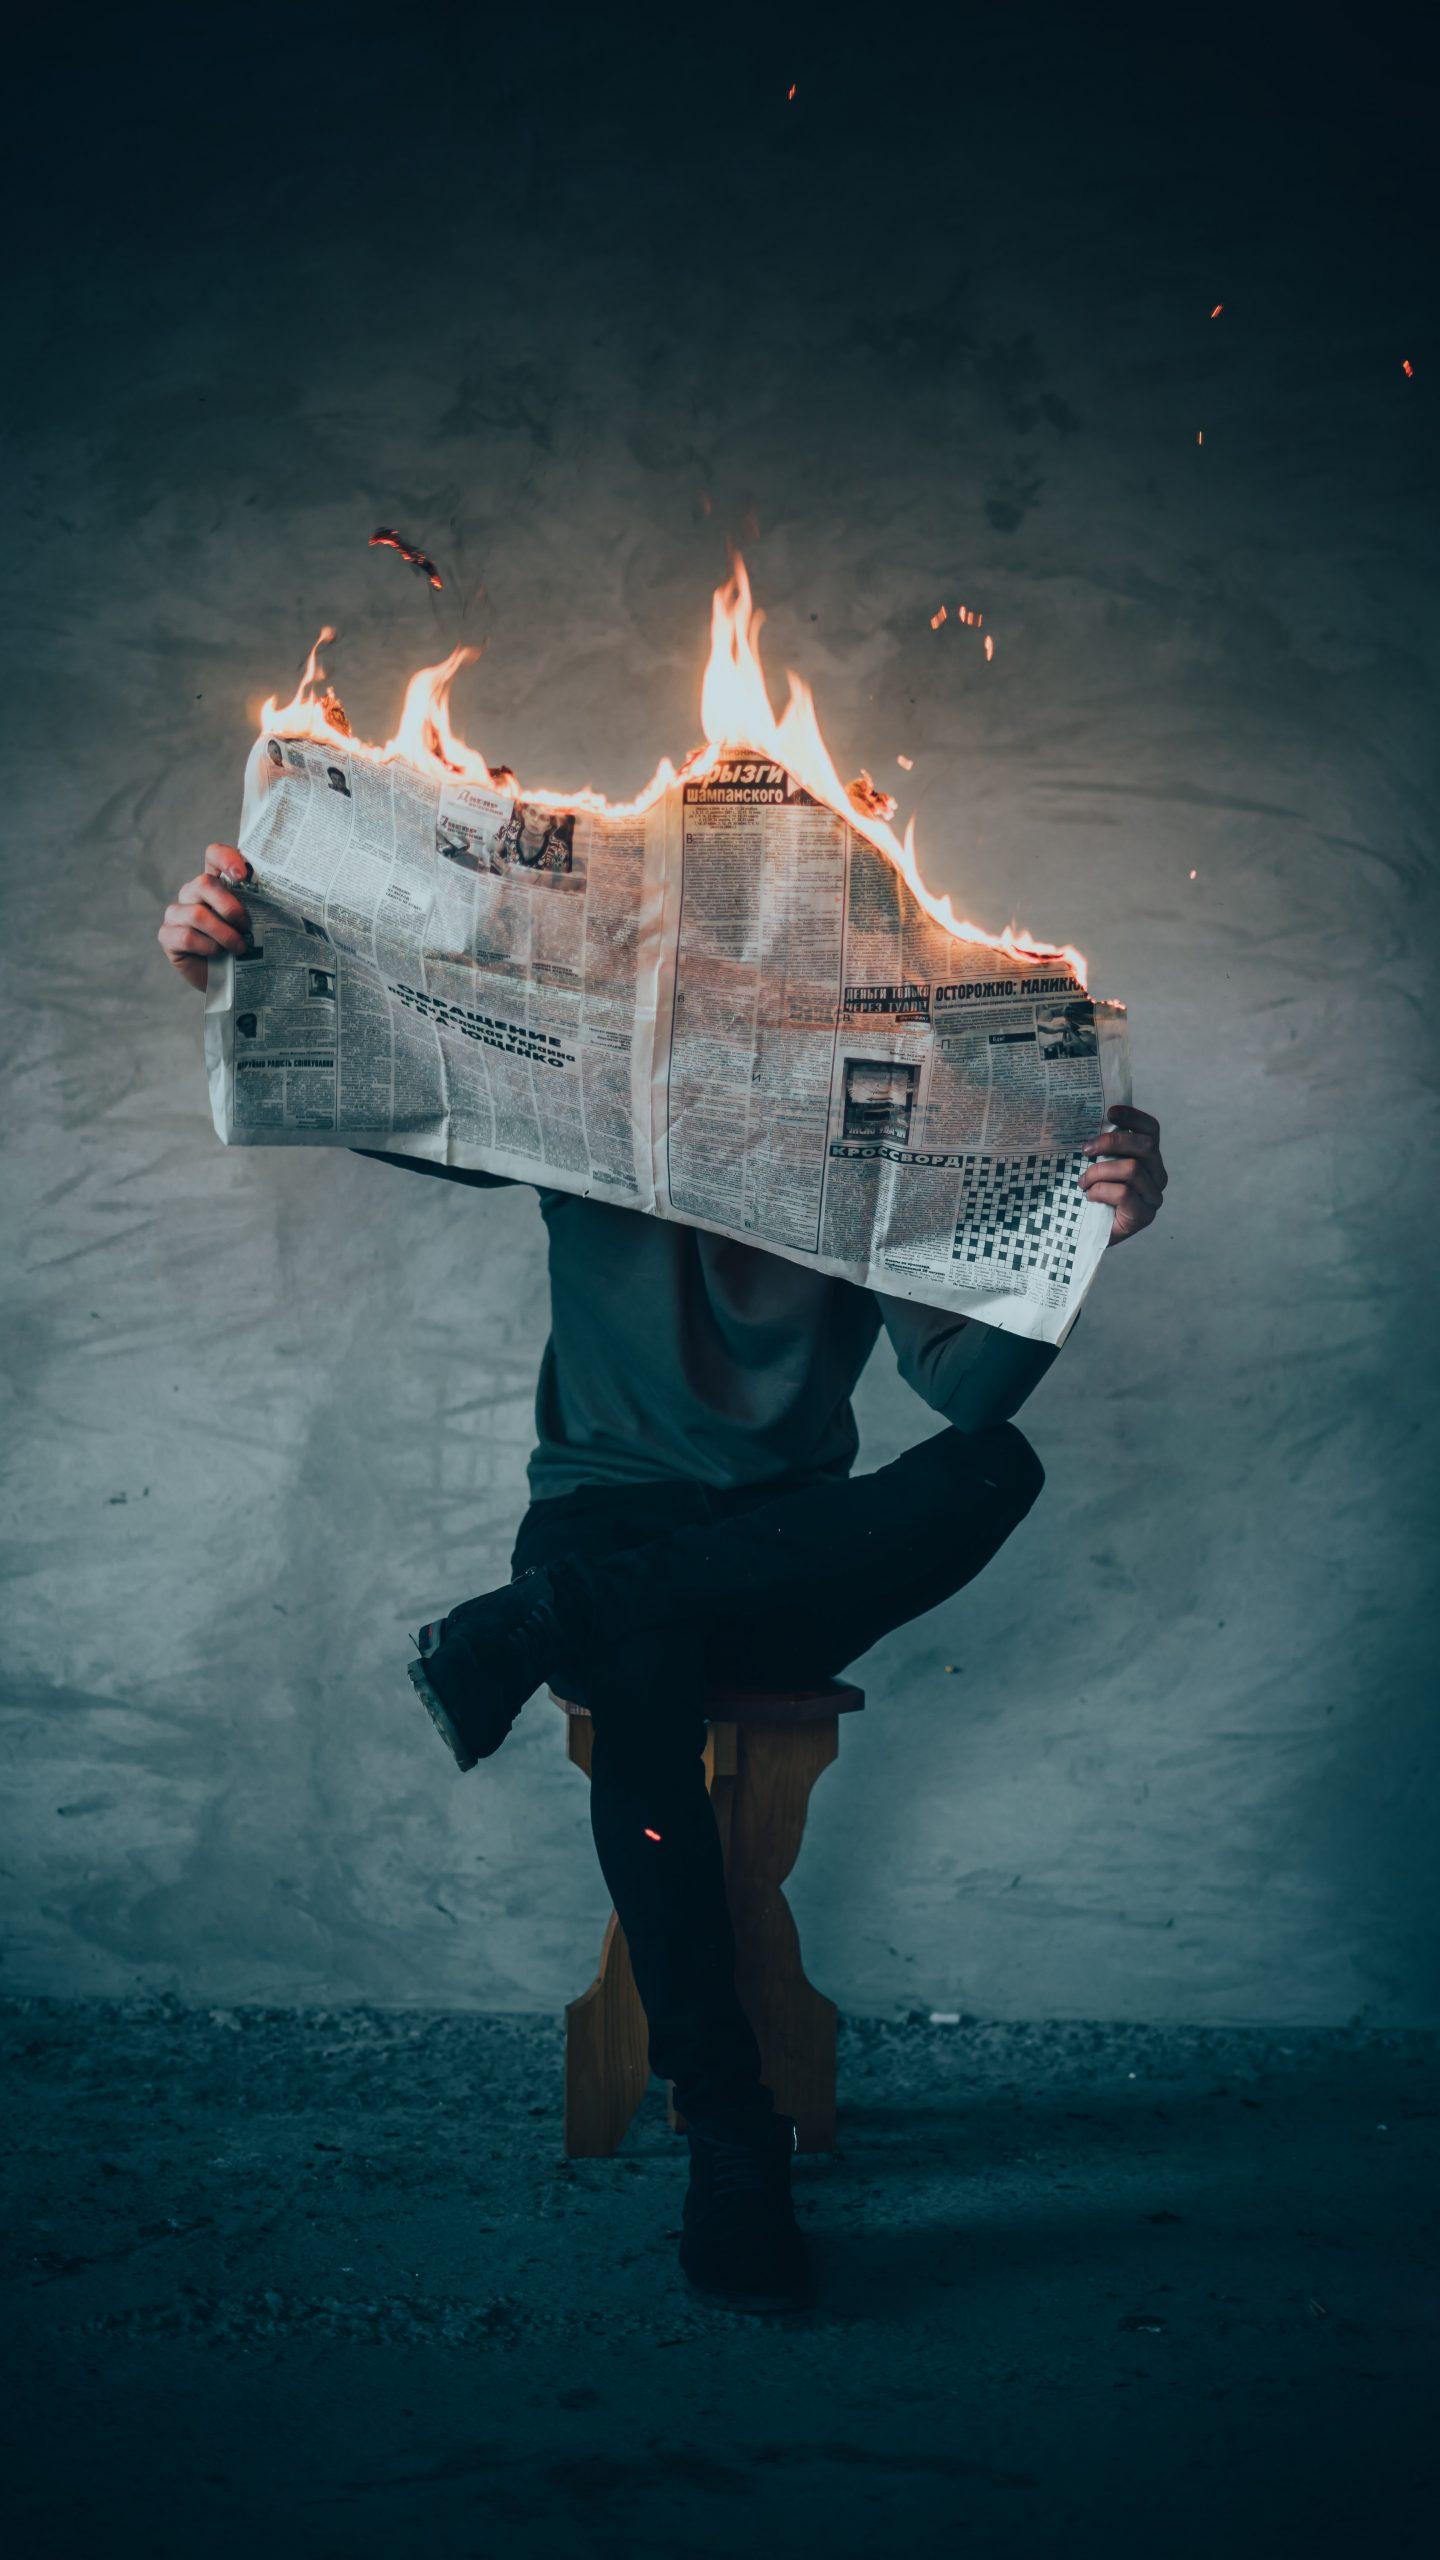 Burning News | © Elijah O'Donnell